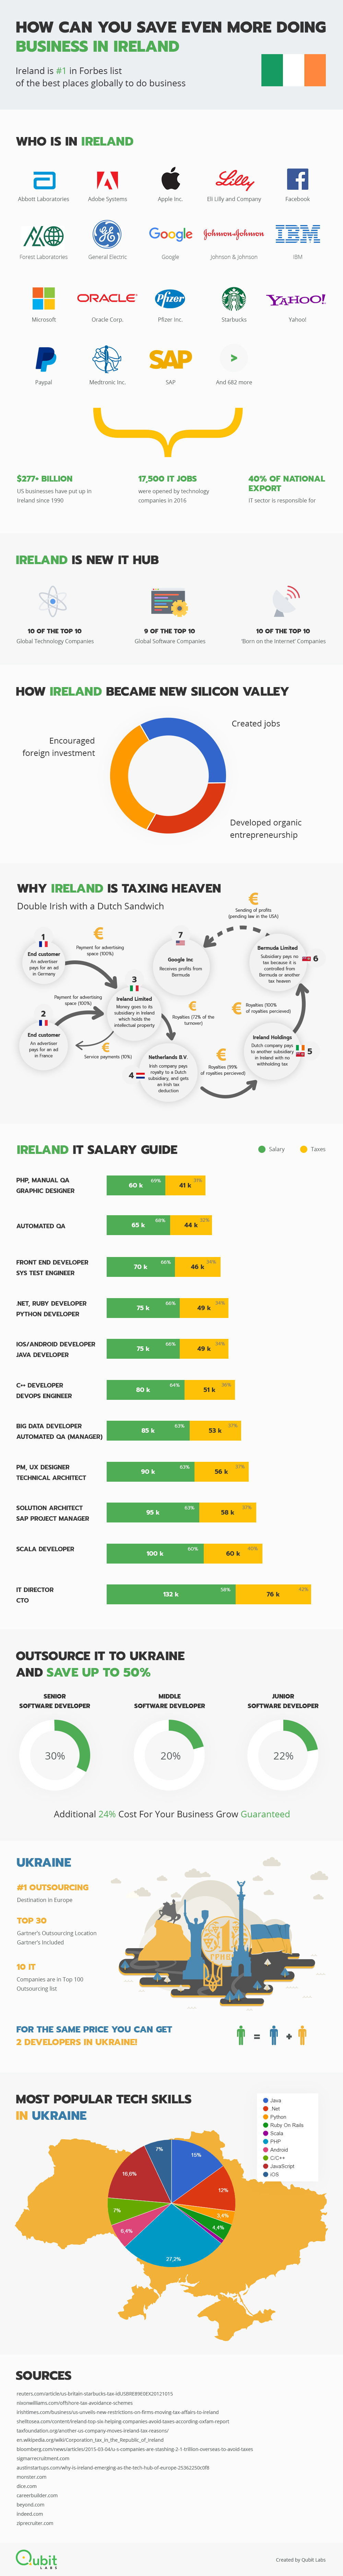 How-Can-You-Save-Even-More-Doing-Business-In-Ireland